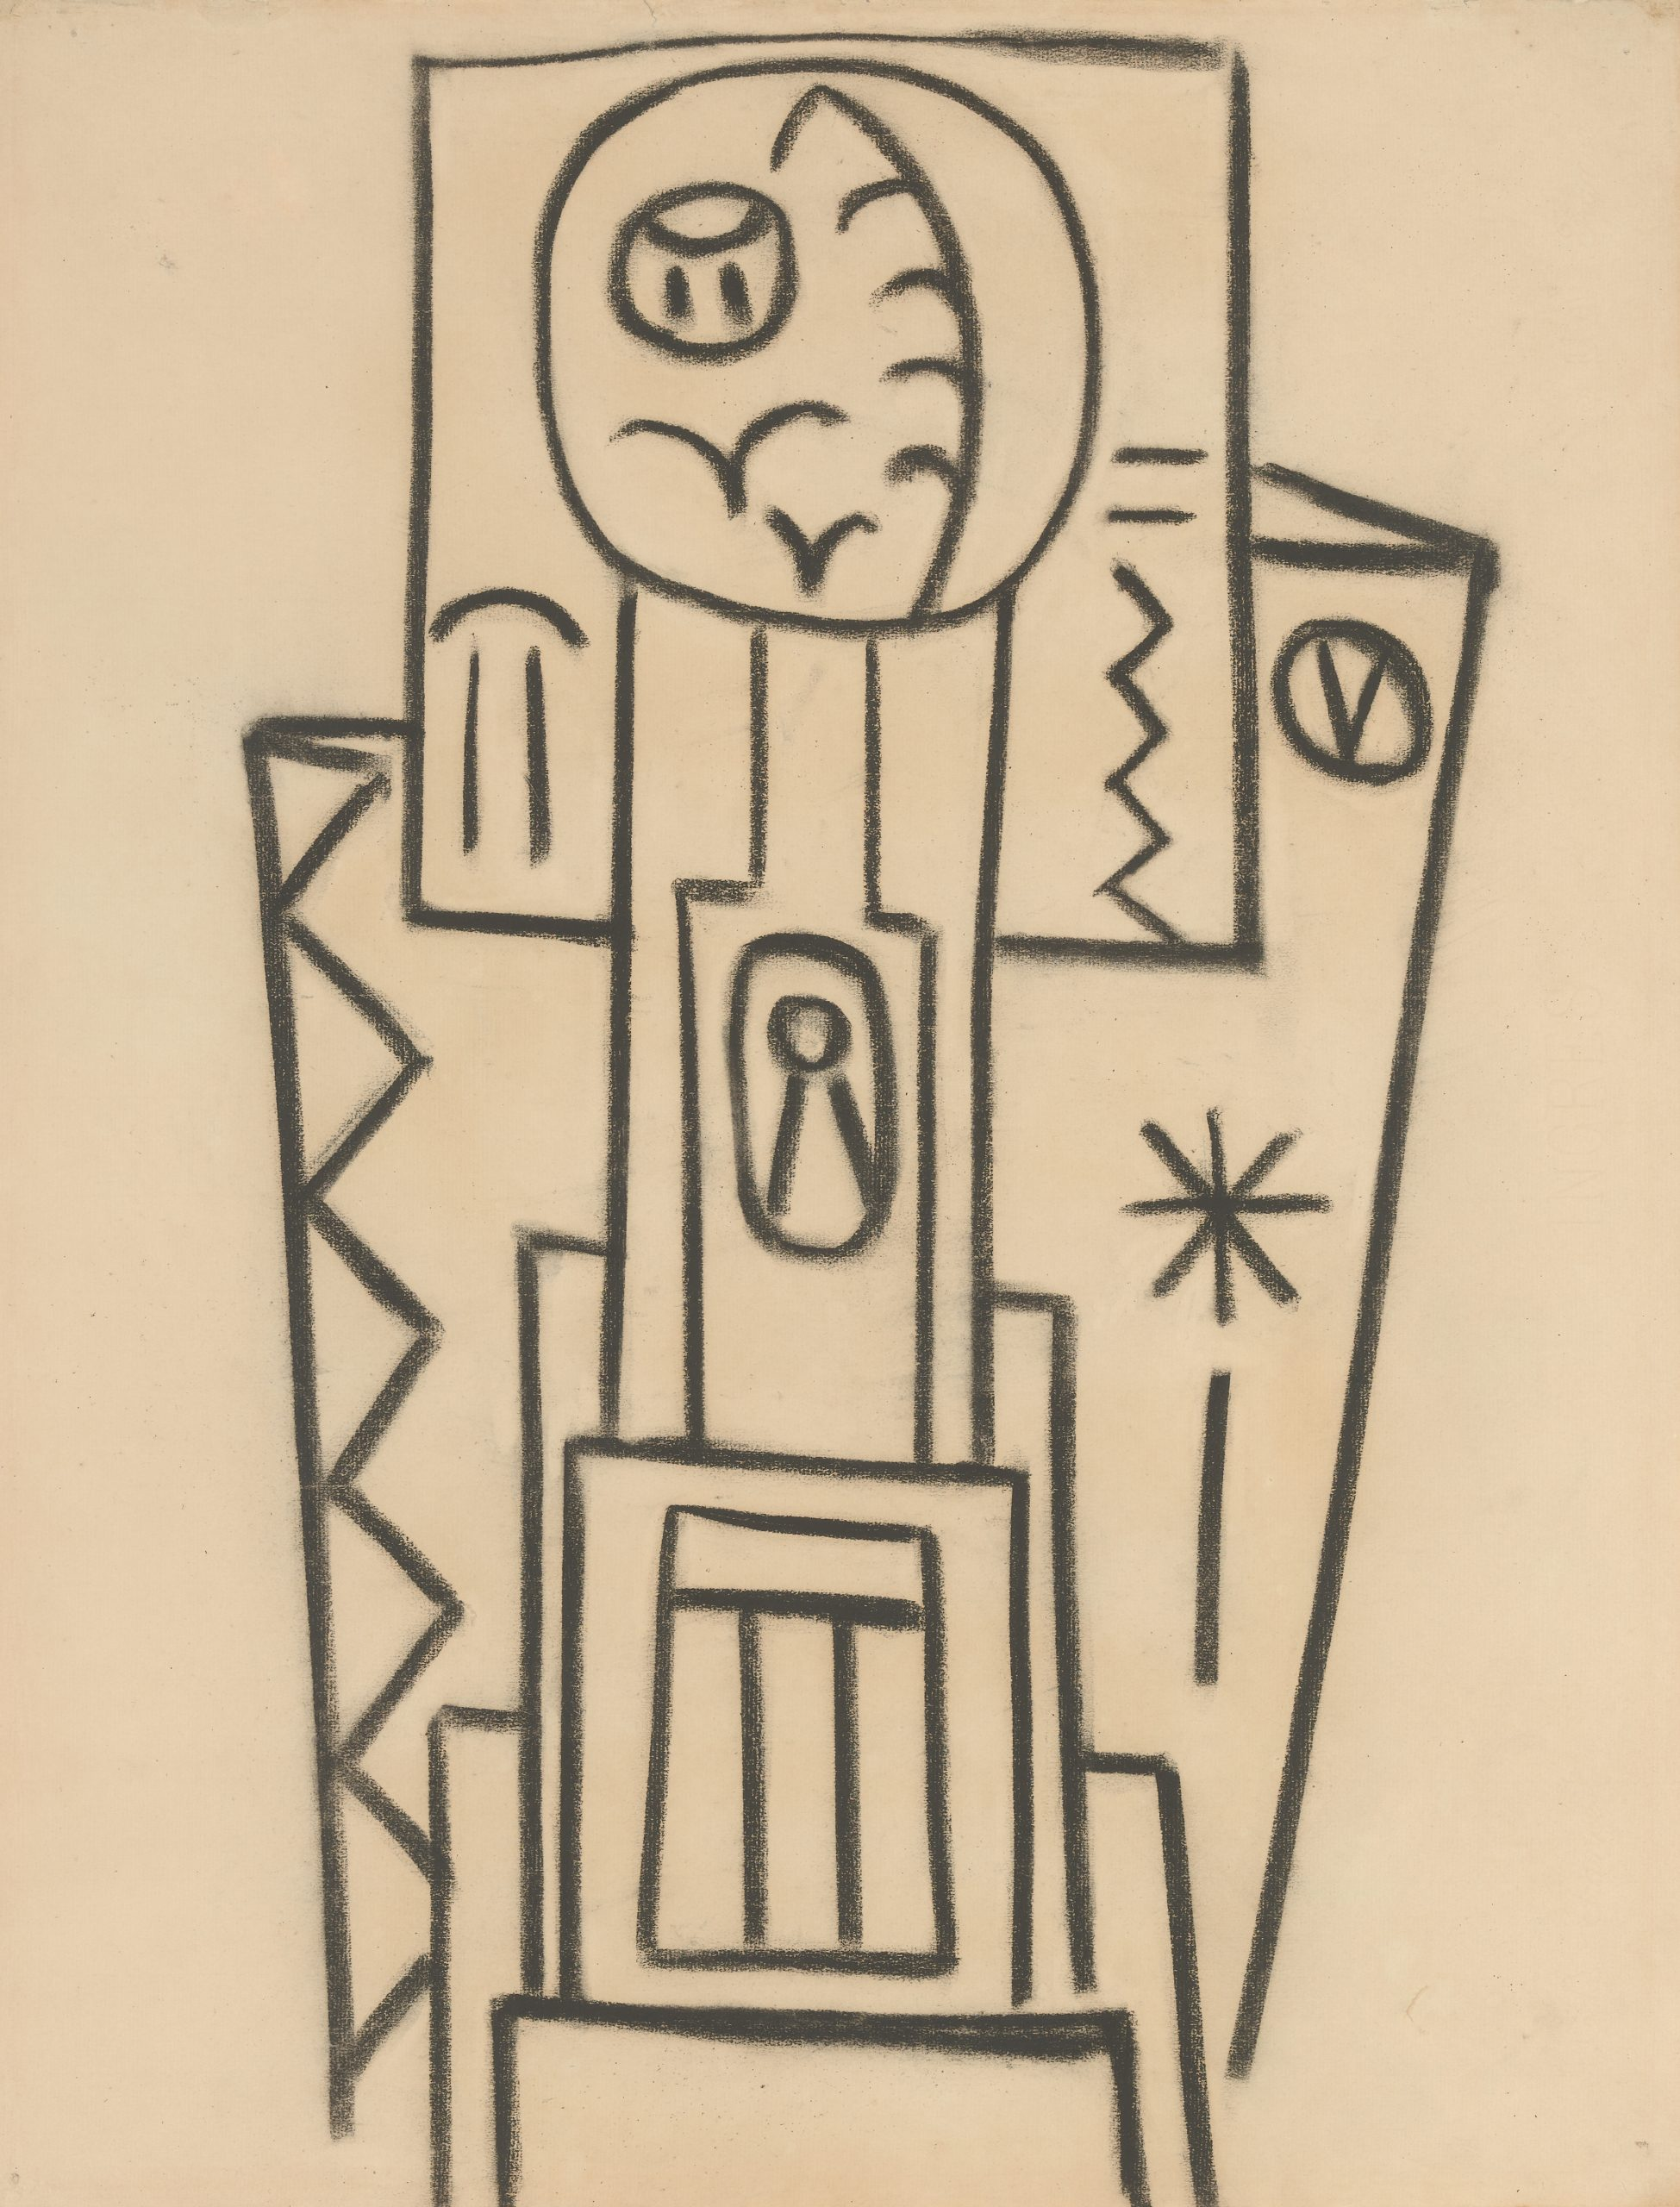 A charcoal drawing featuring appropriated Native American symbols and imagery associated.